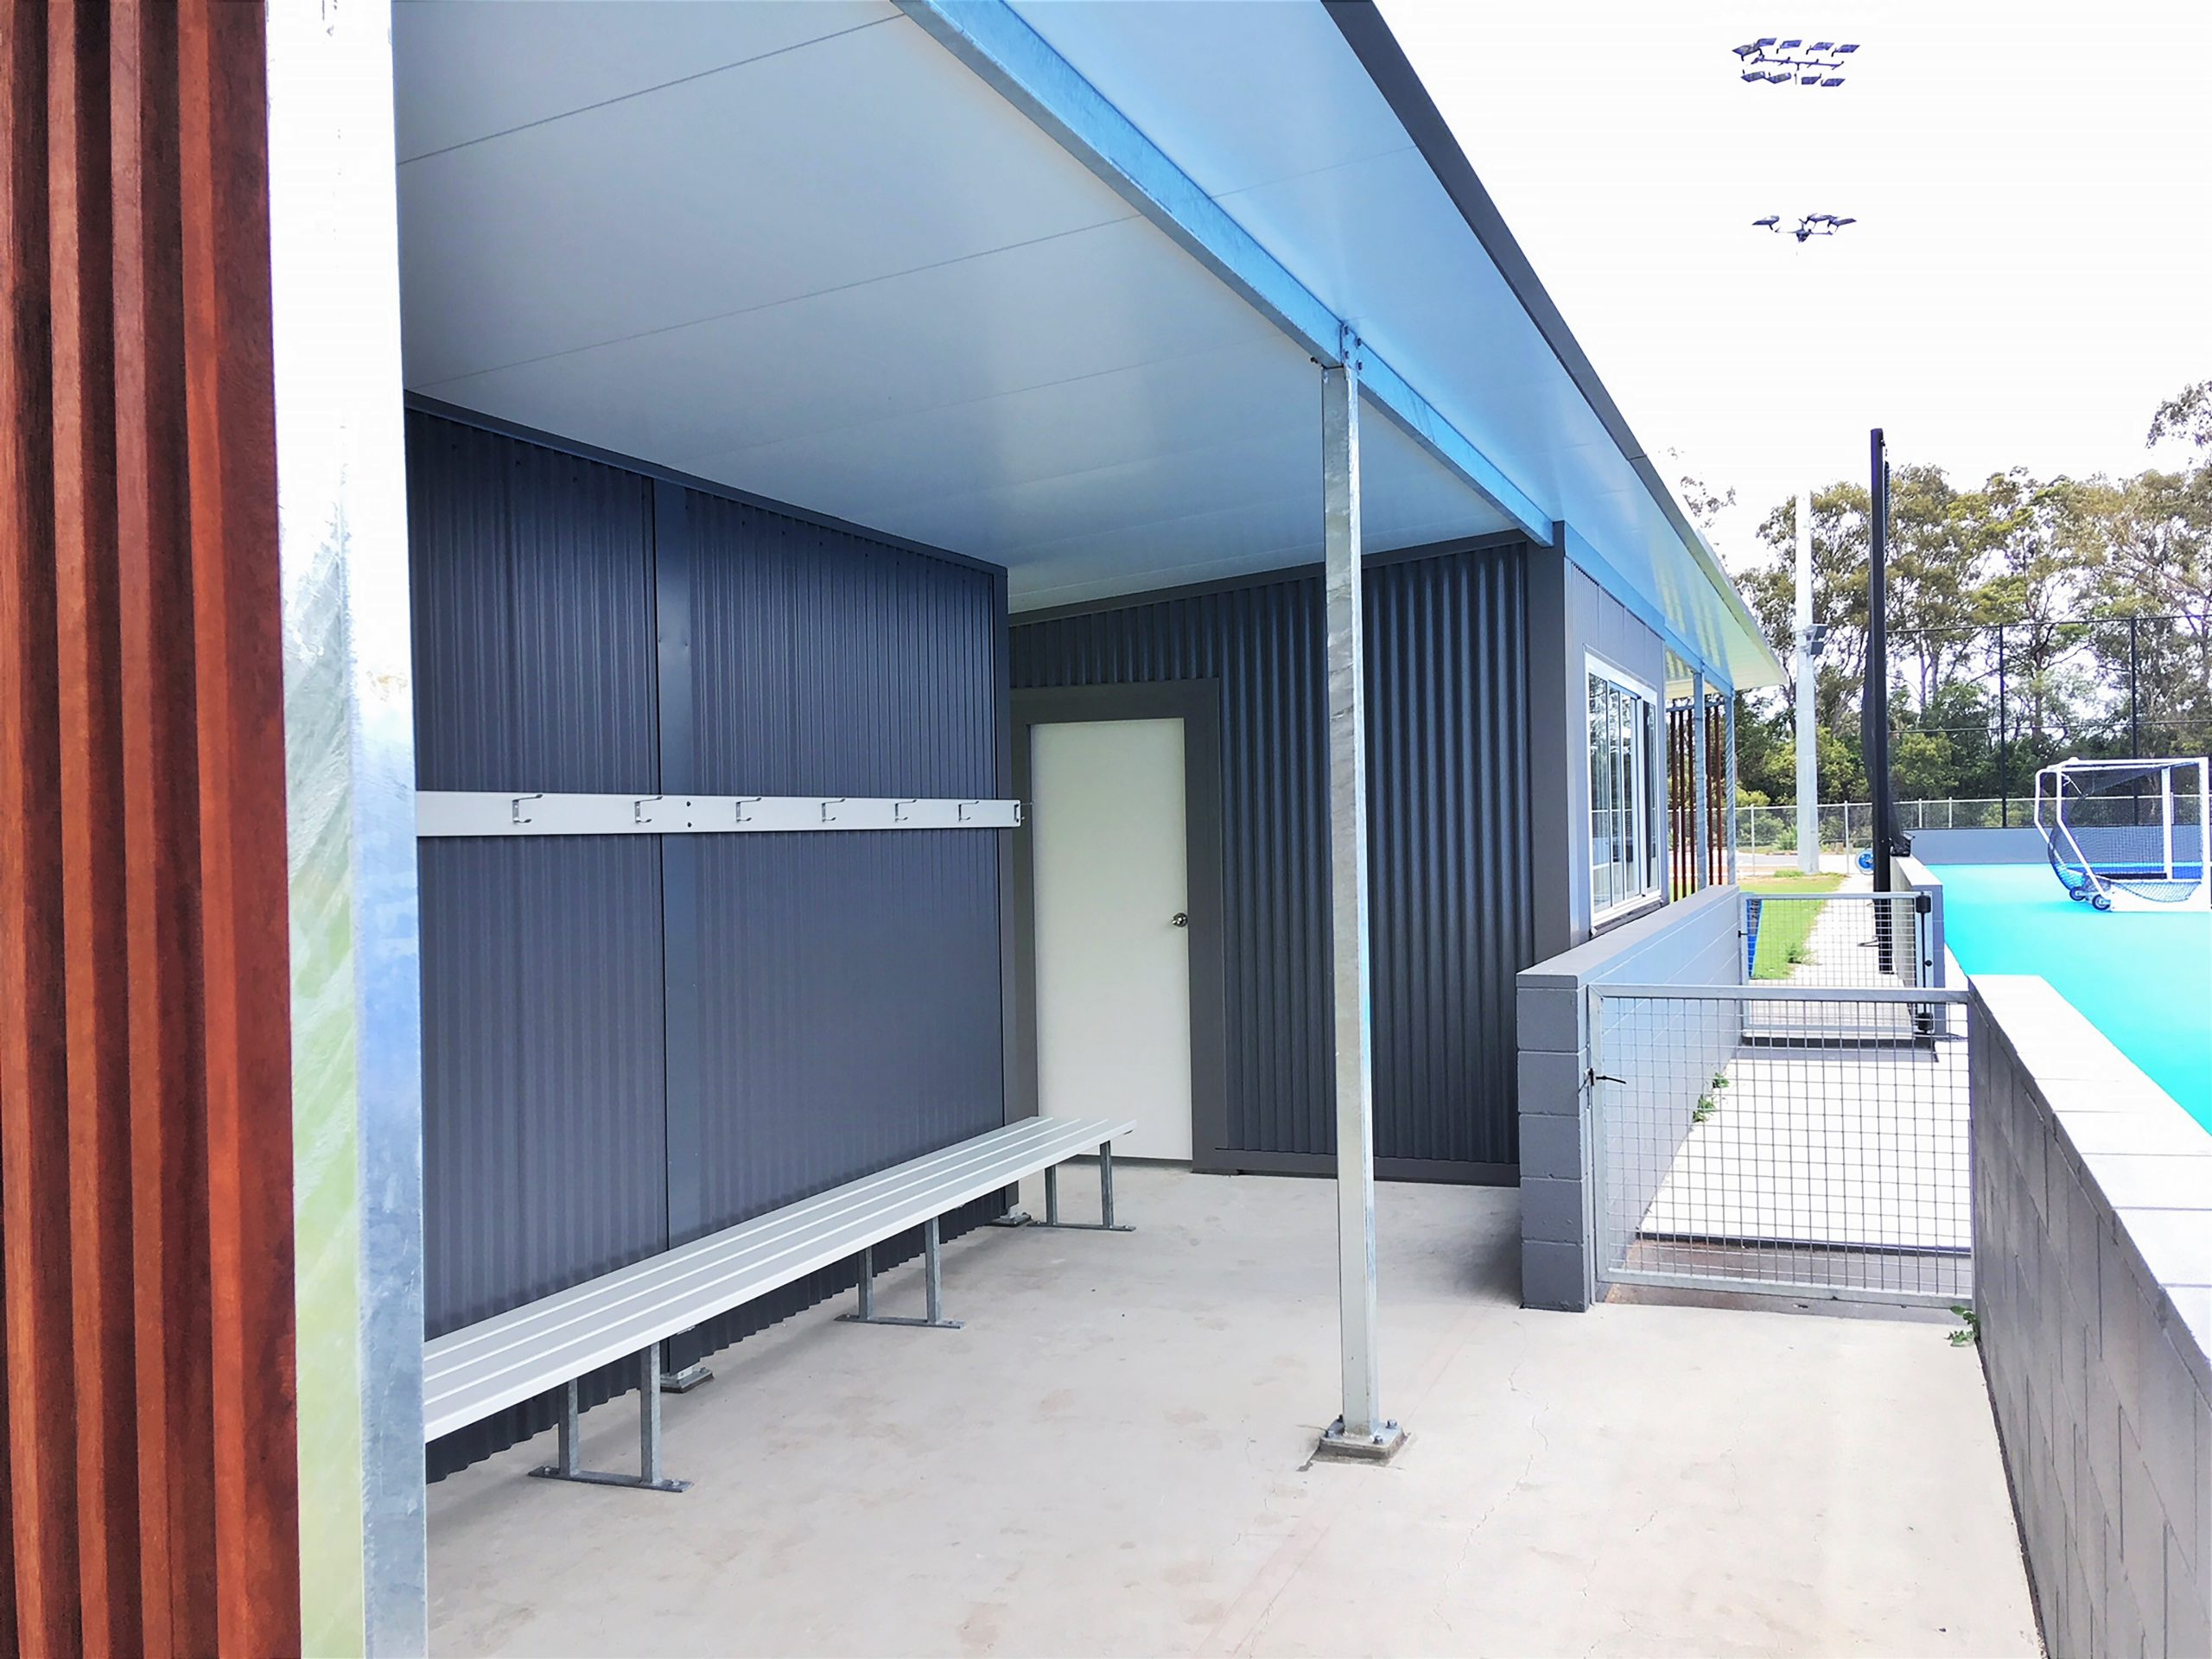 PLAYER SHELTERS & COACHES BOXES